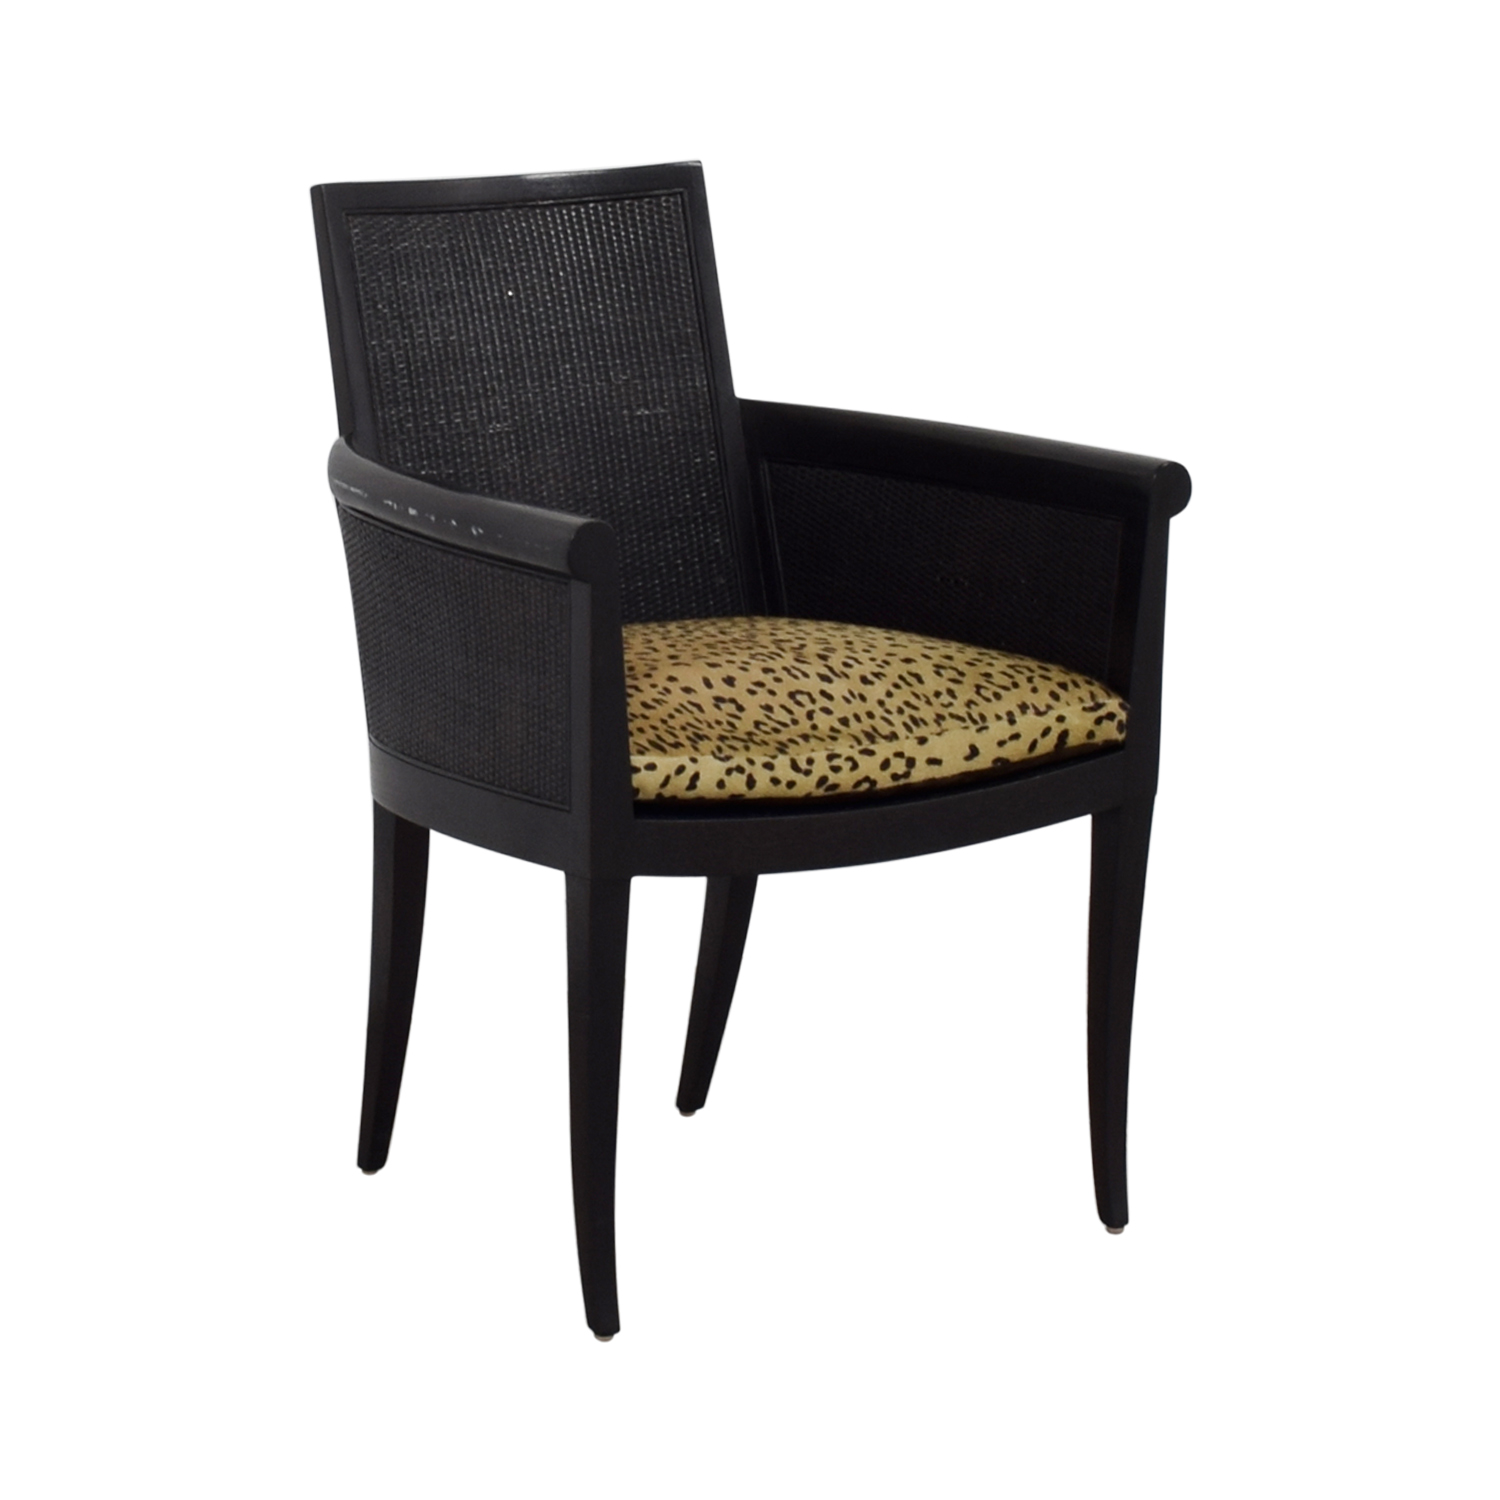 ... Sutherland Sutherland Cane Armchair With Pony Skin Leopard Cushion  LEOPARD ...